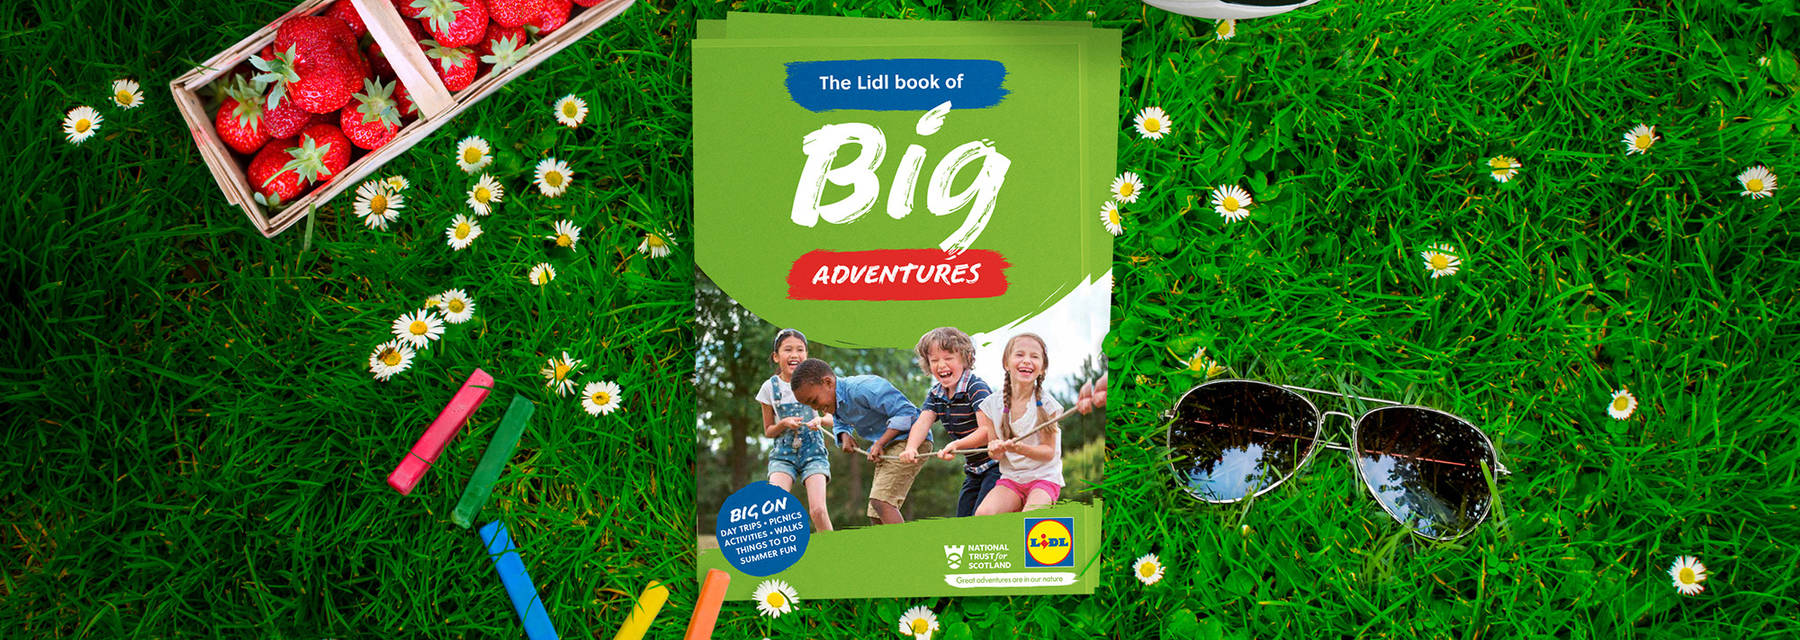 The Lidl Book of Big Adventures